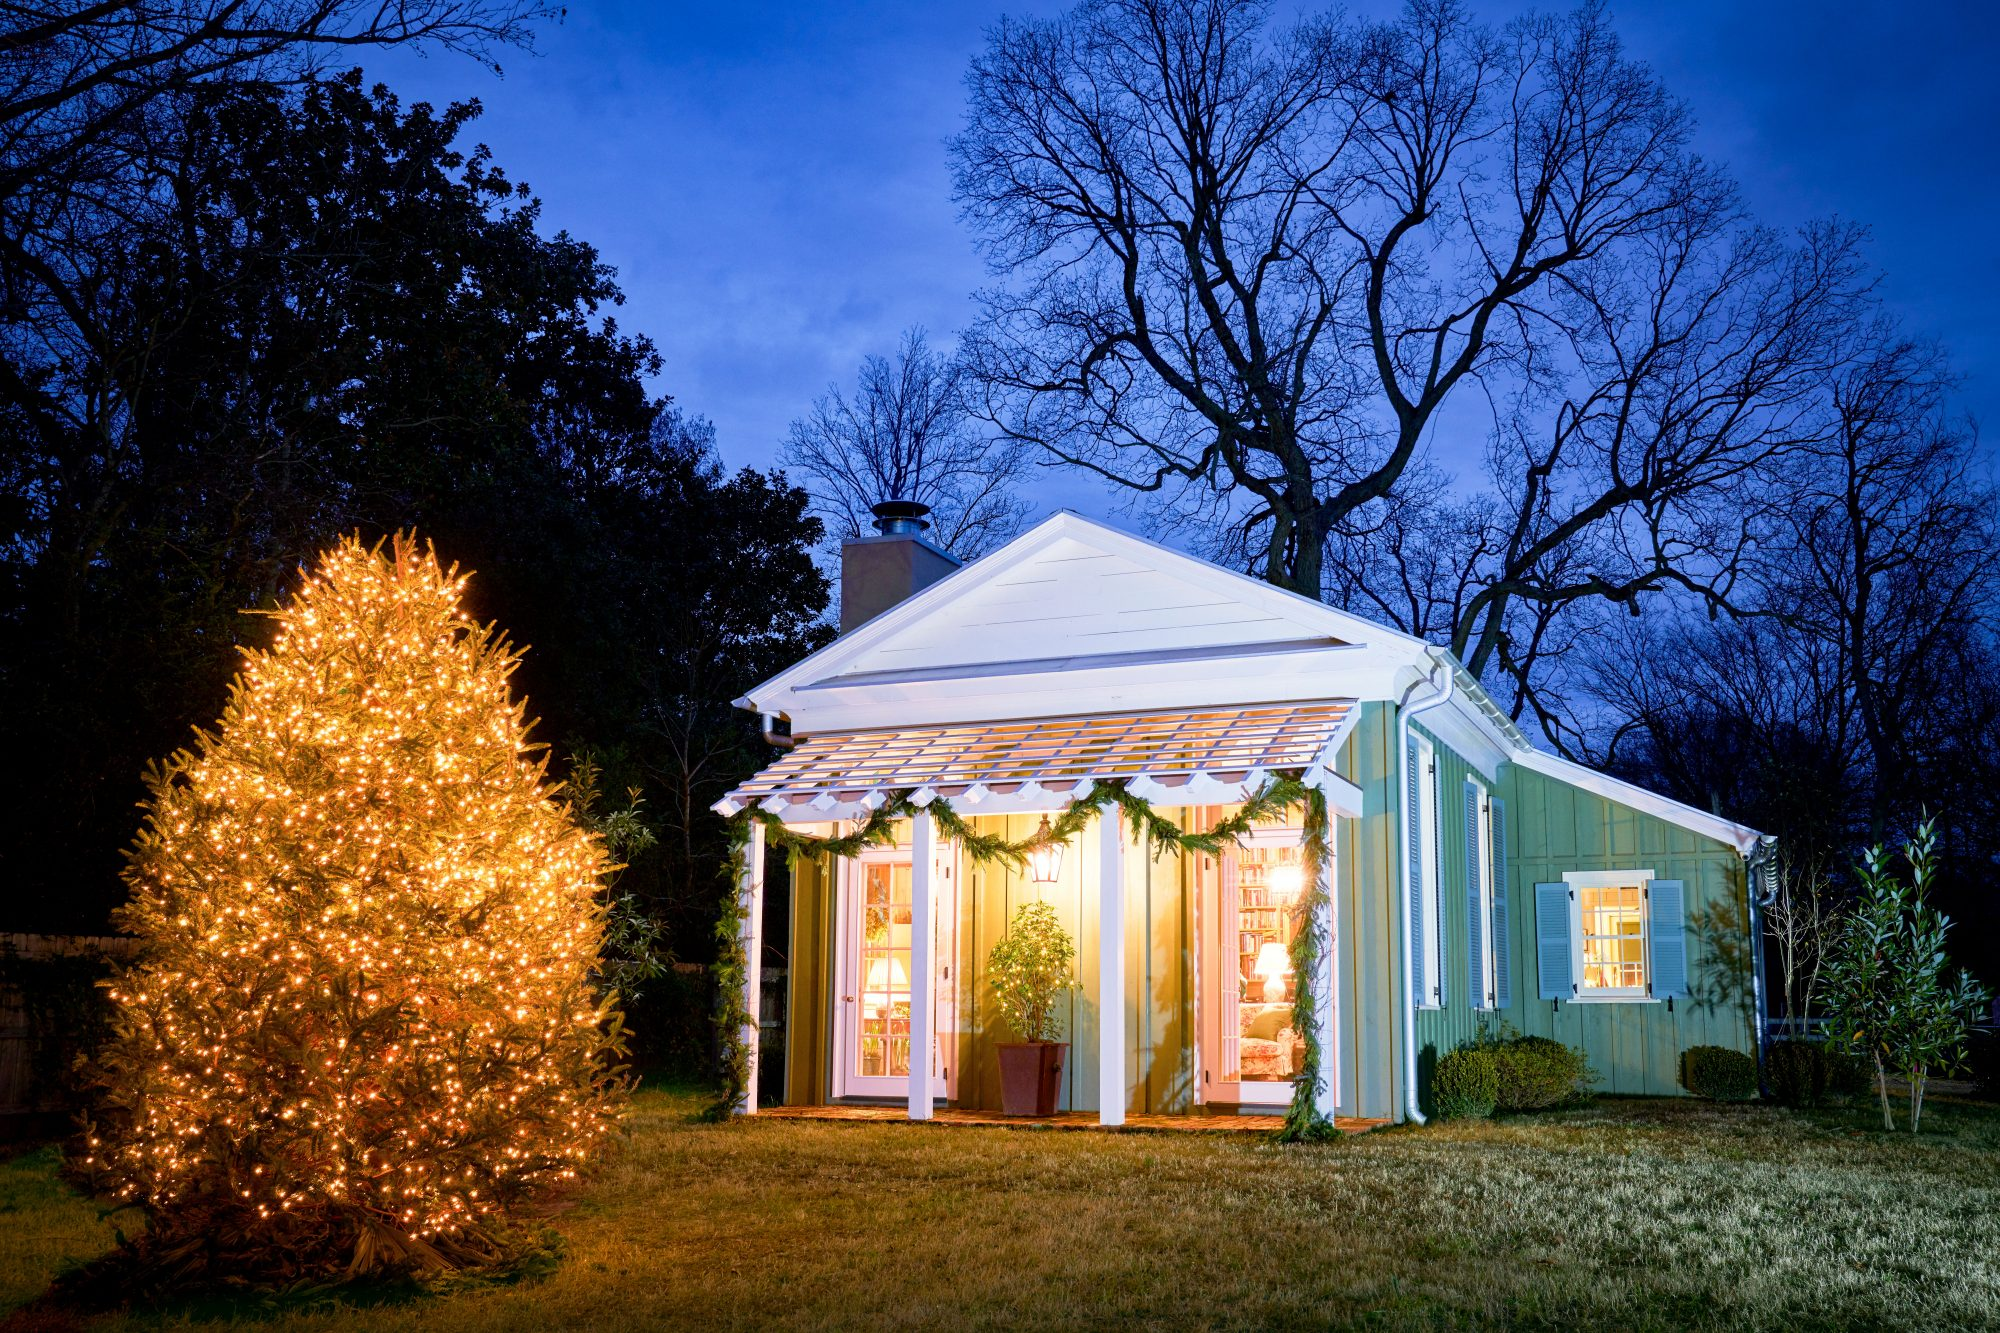 Julia Reed's Delta Folly Home in Mississippi decorated for Christmas